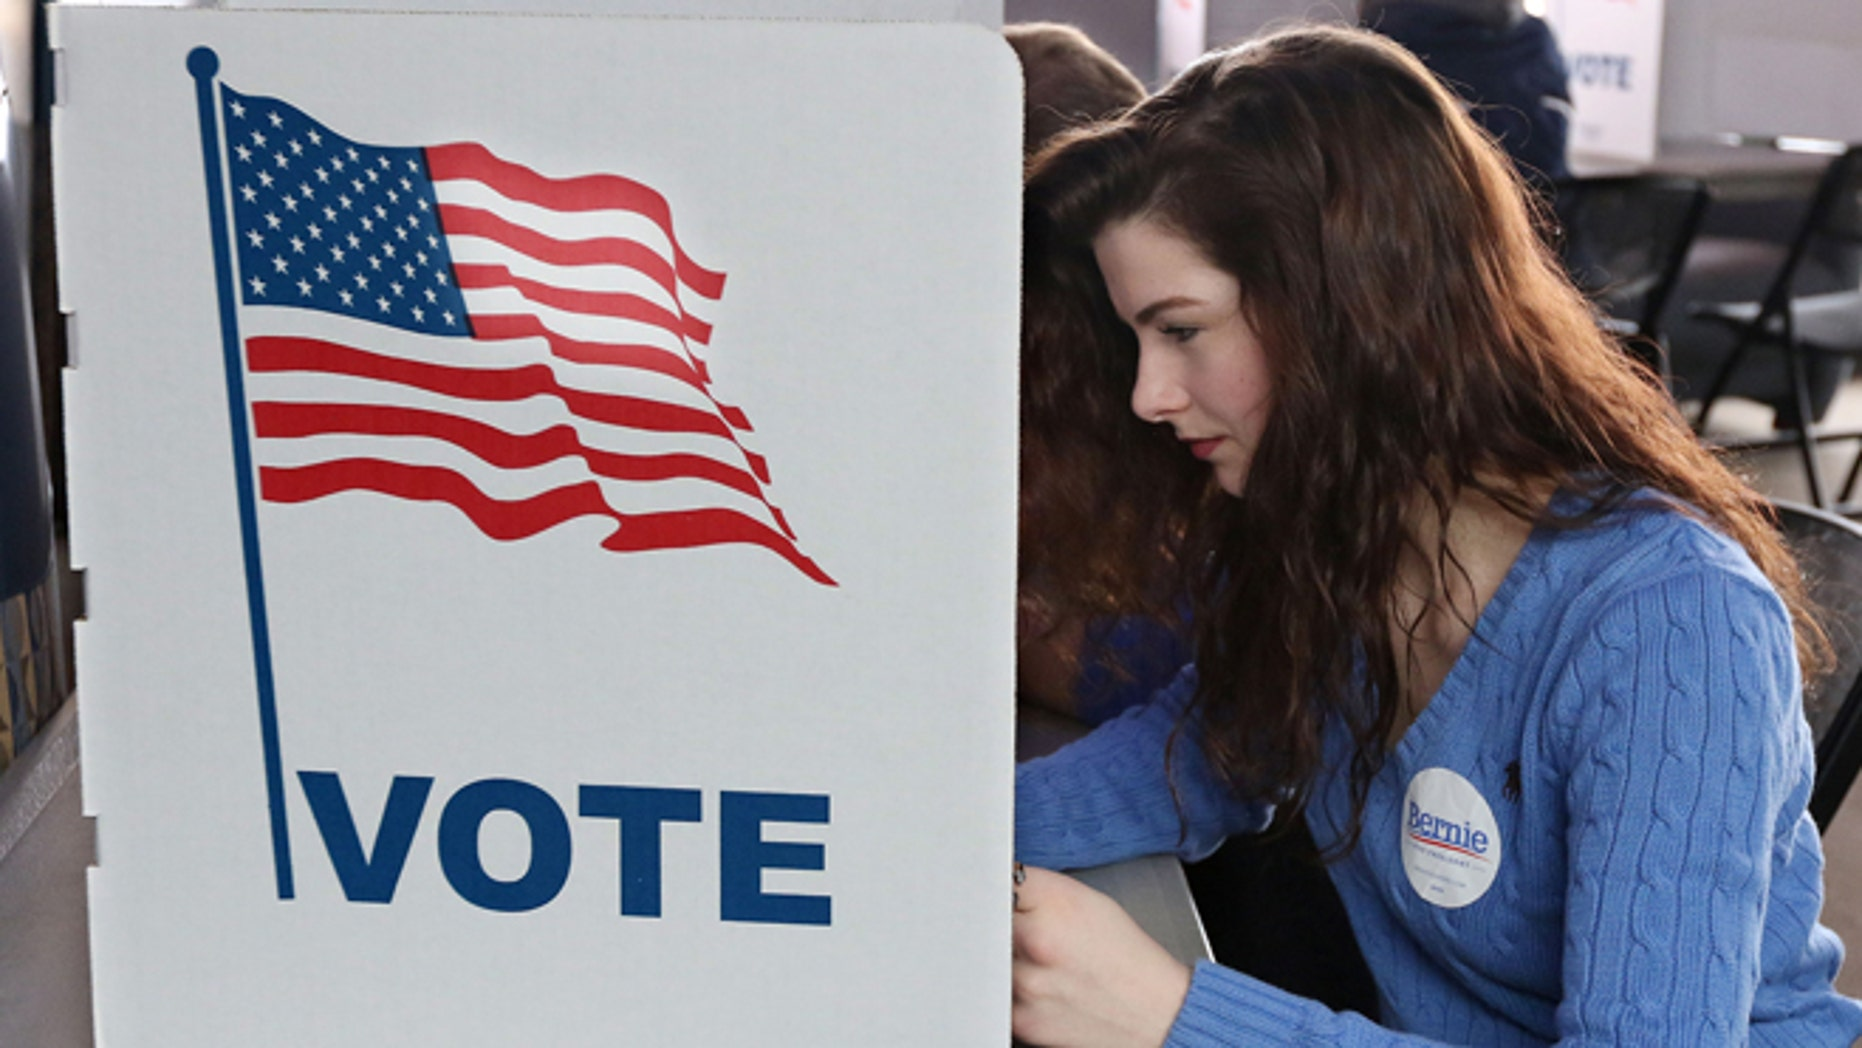 Abi Nesbitt, a UW-Eau Claire freshman from Mosinee, Wis., votes in her first primary election at UW-Eau Claire's Davies Center on Tuesday morning, April 5, 2016. (Dan Reiland/The Eau Claire Leader-Telegram via AP)